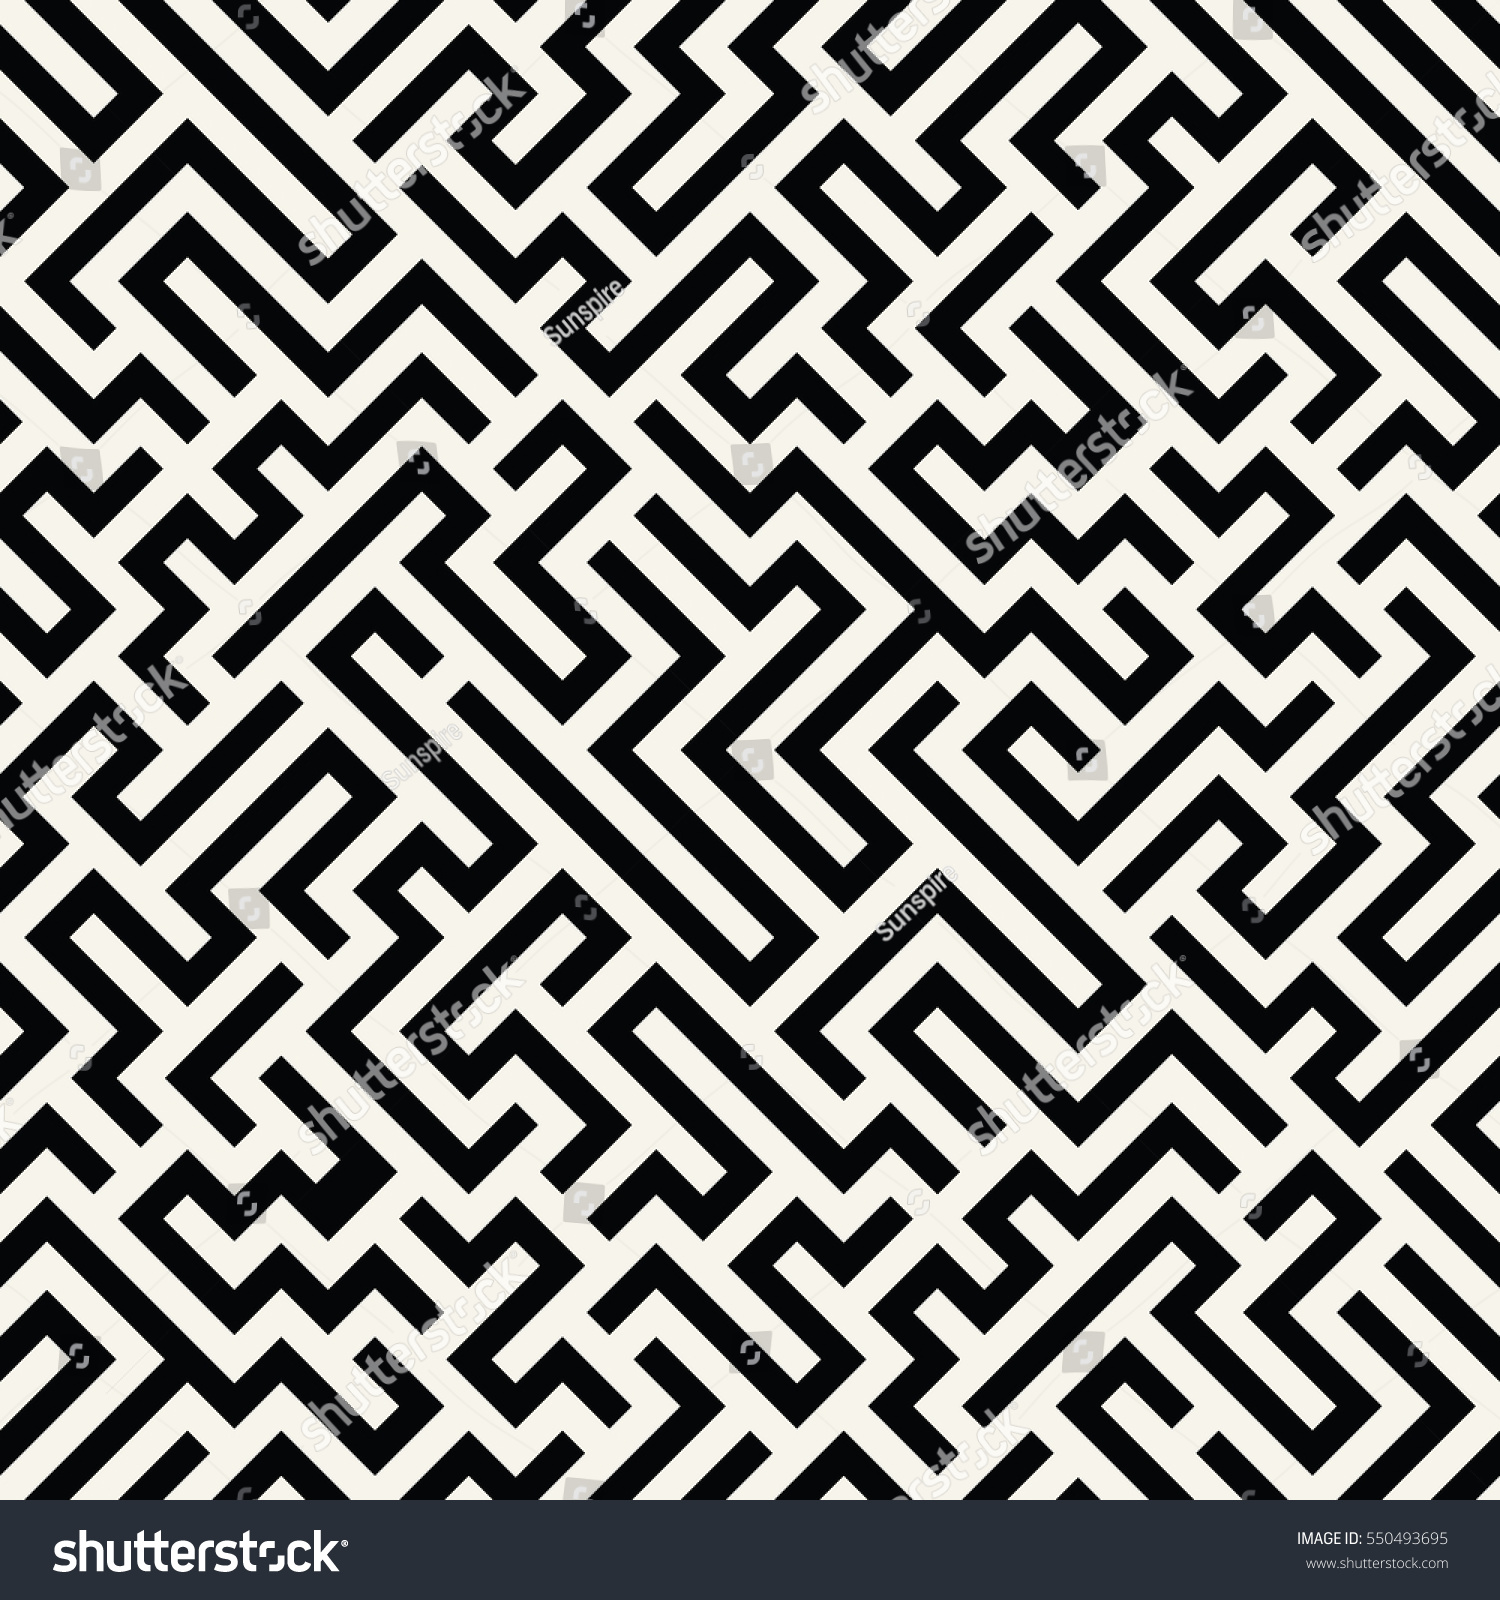 Black bed sheets pattern - Vector Graphic Abstract Geometry Maze Pattern Black And White Seamless Geometric Background Subtle Pillow